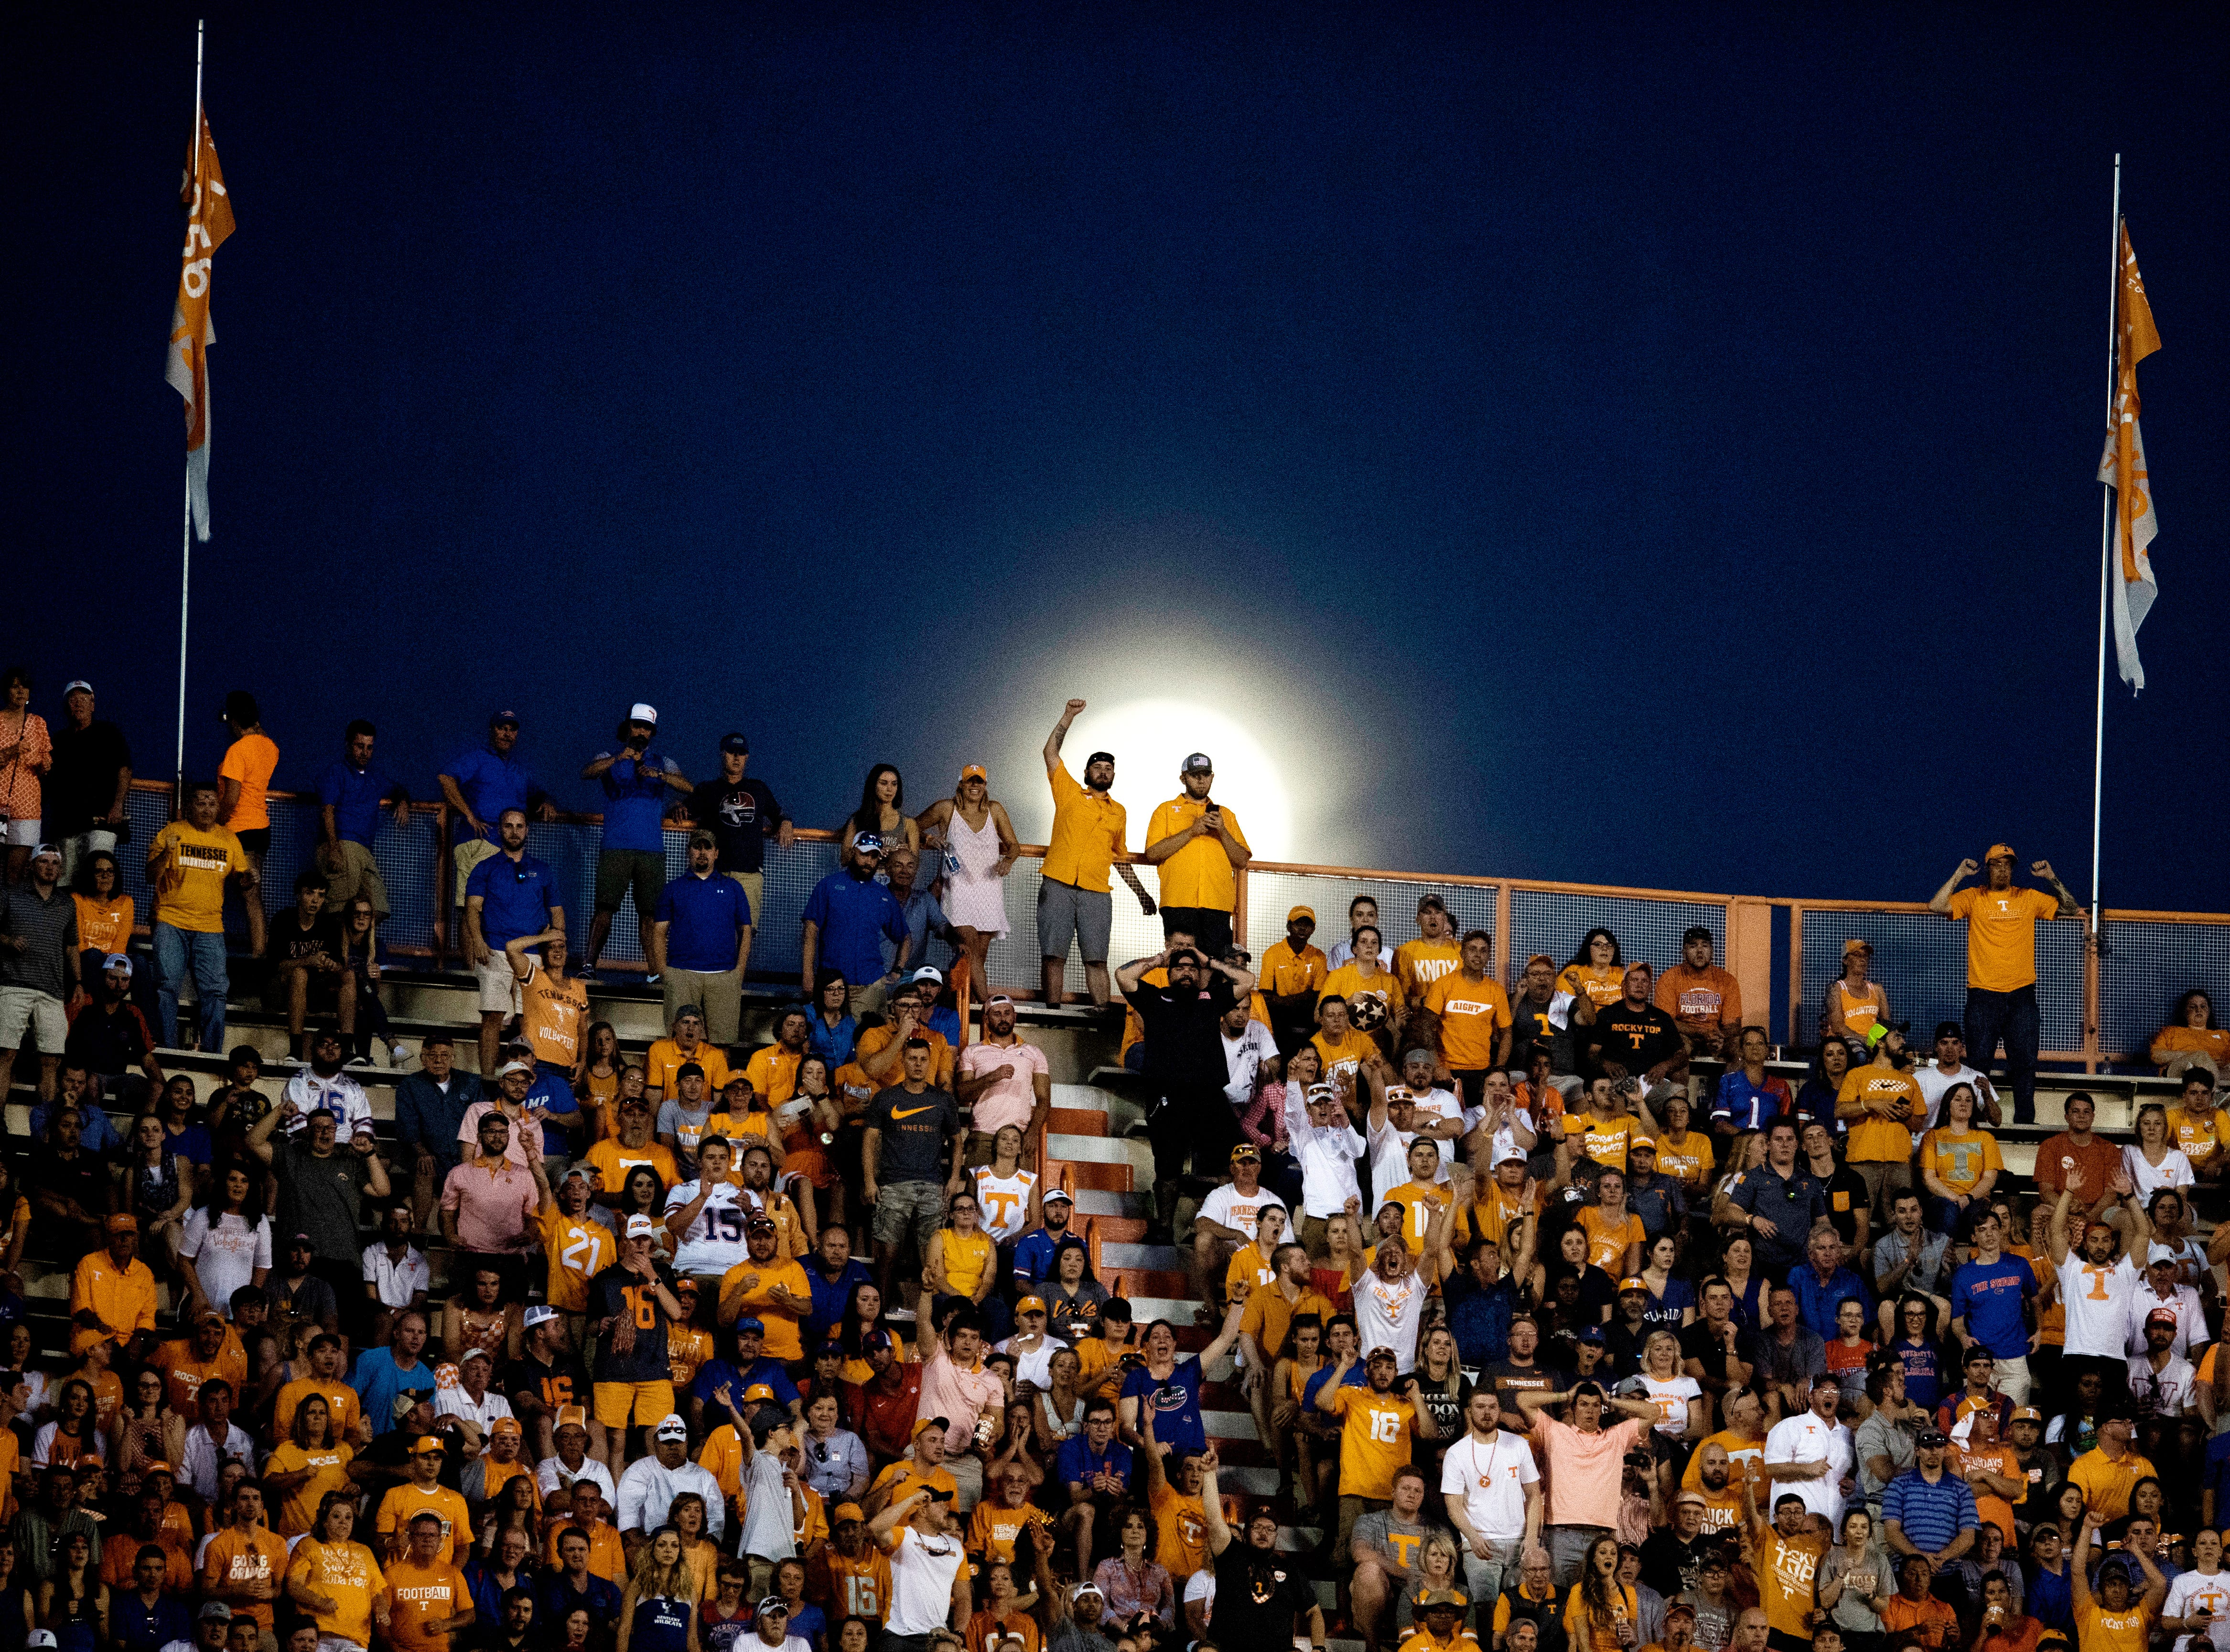 Fans cheer from the stands as the moon rises in the distance during a game between Tennessee and Florida at Neyland Stadium in Knoxville, Tennessee on Saturday, September 22, 2018.